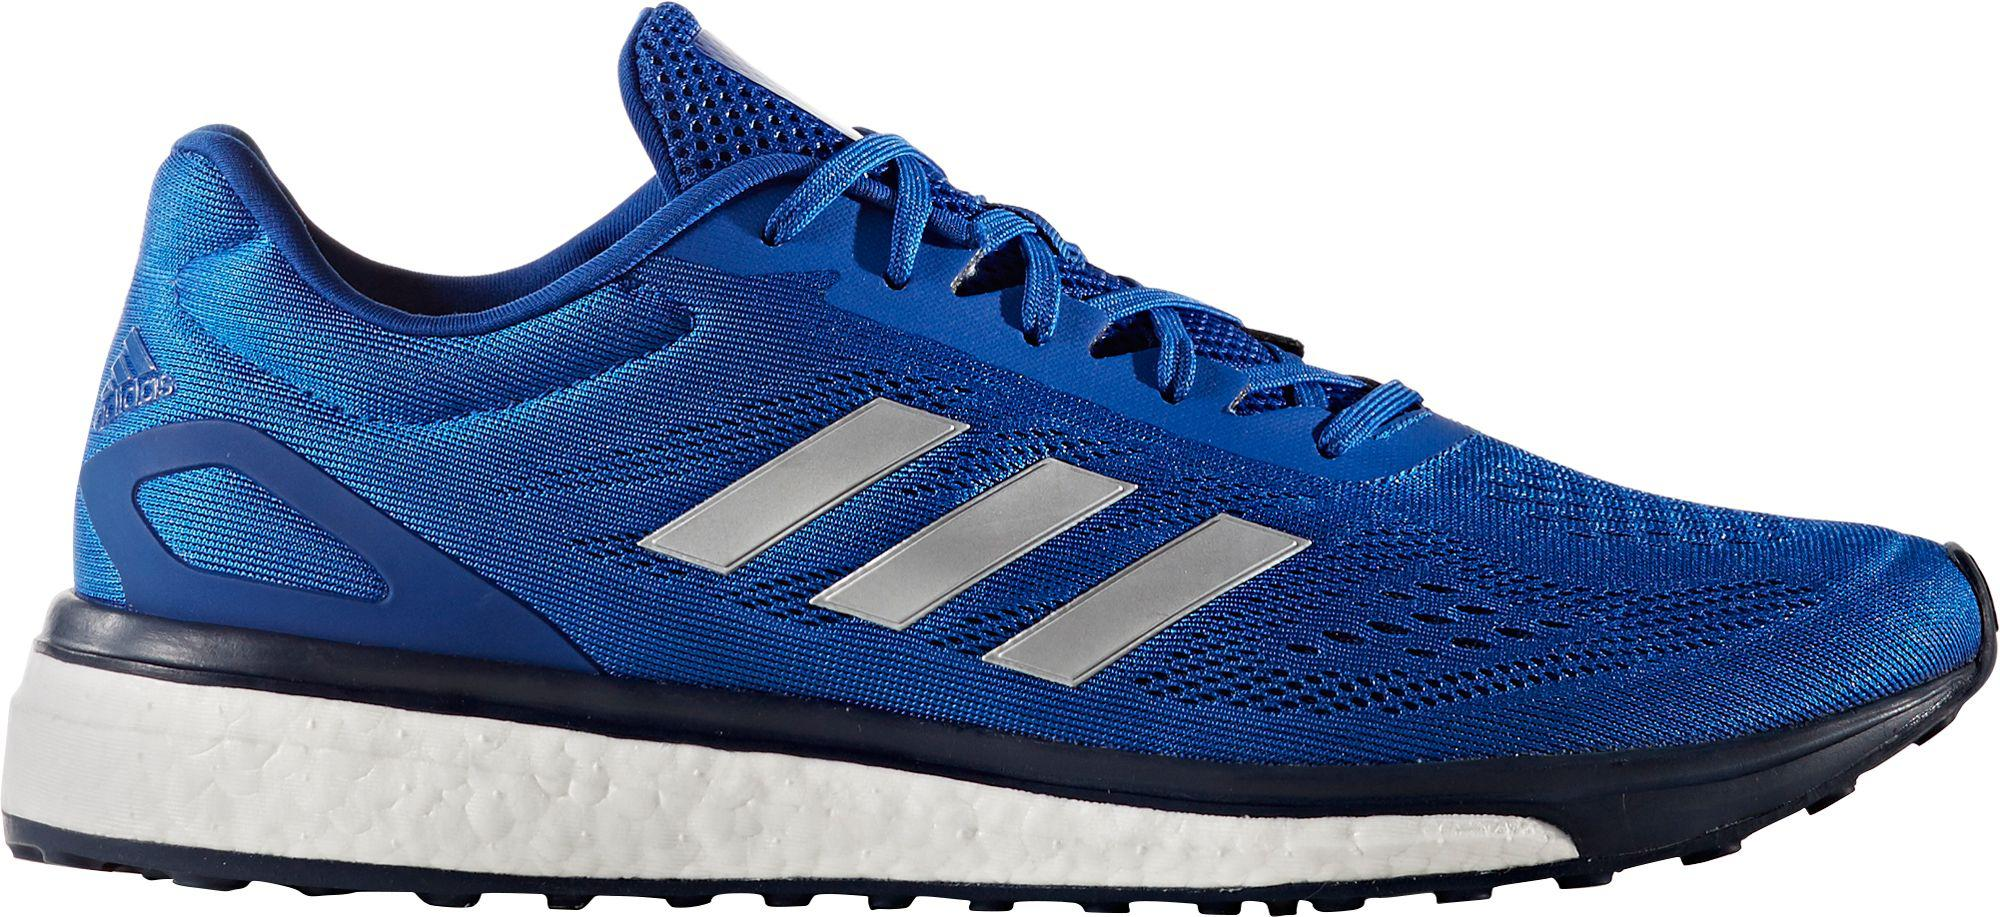 Sonic Drive Running Shoes